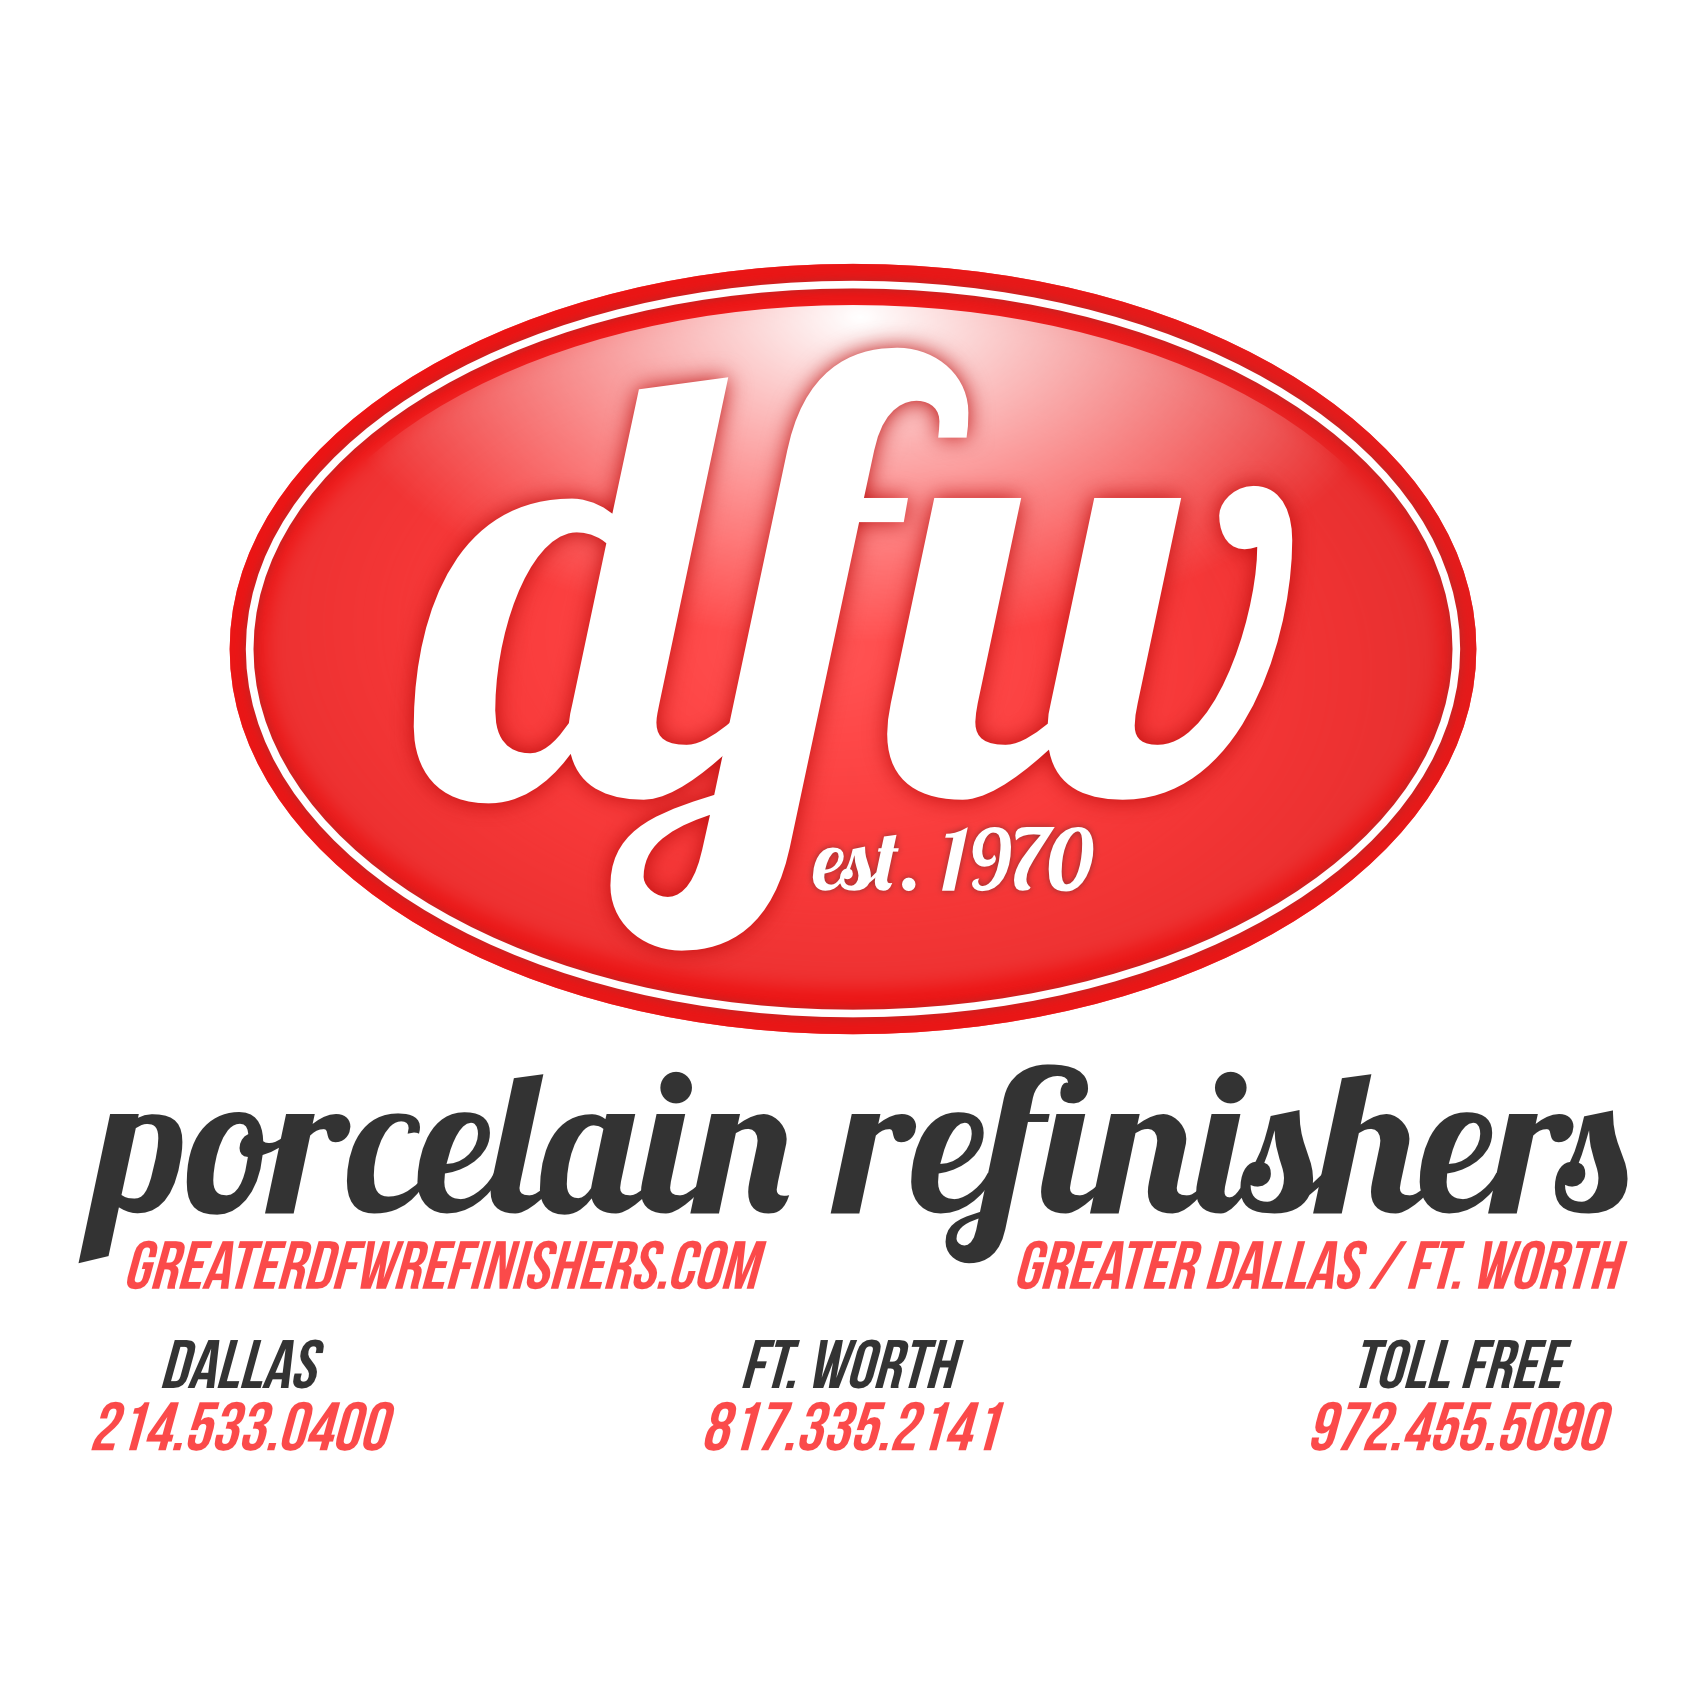 Greater DFW Refinishers